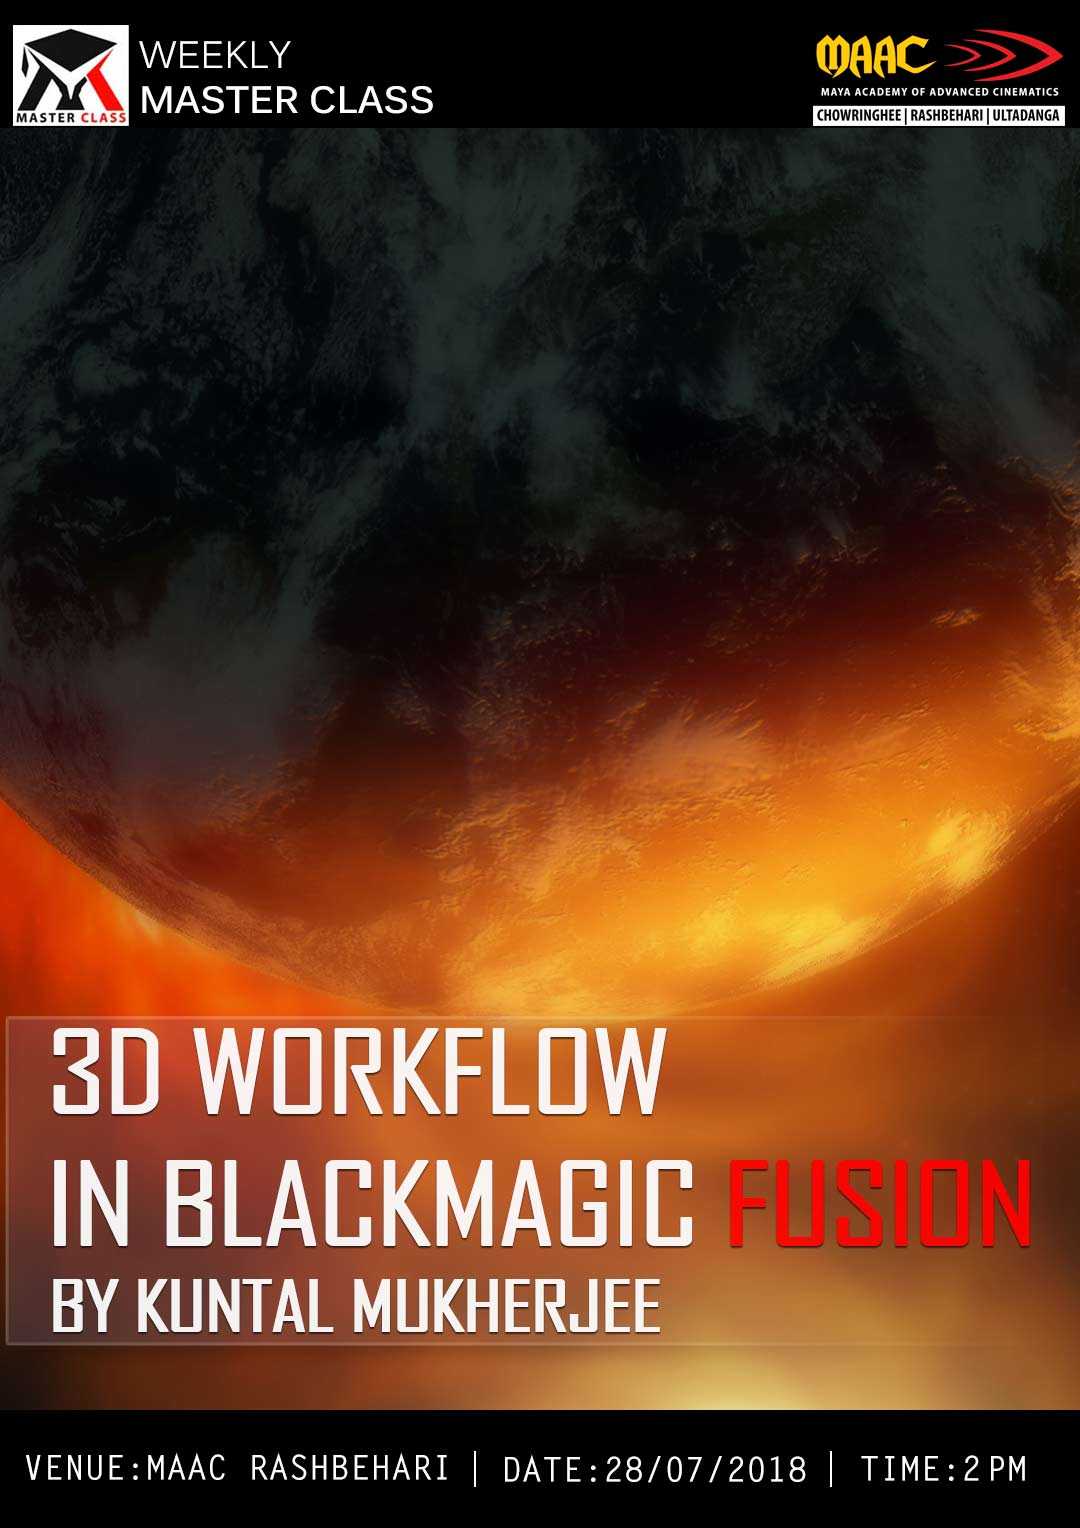 Weekly Master Class on 3D Workflow in Blackmagic Fusion